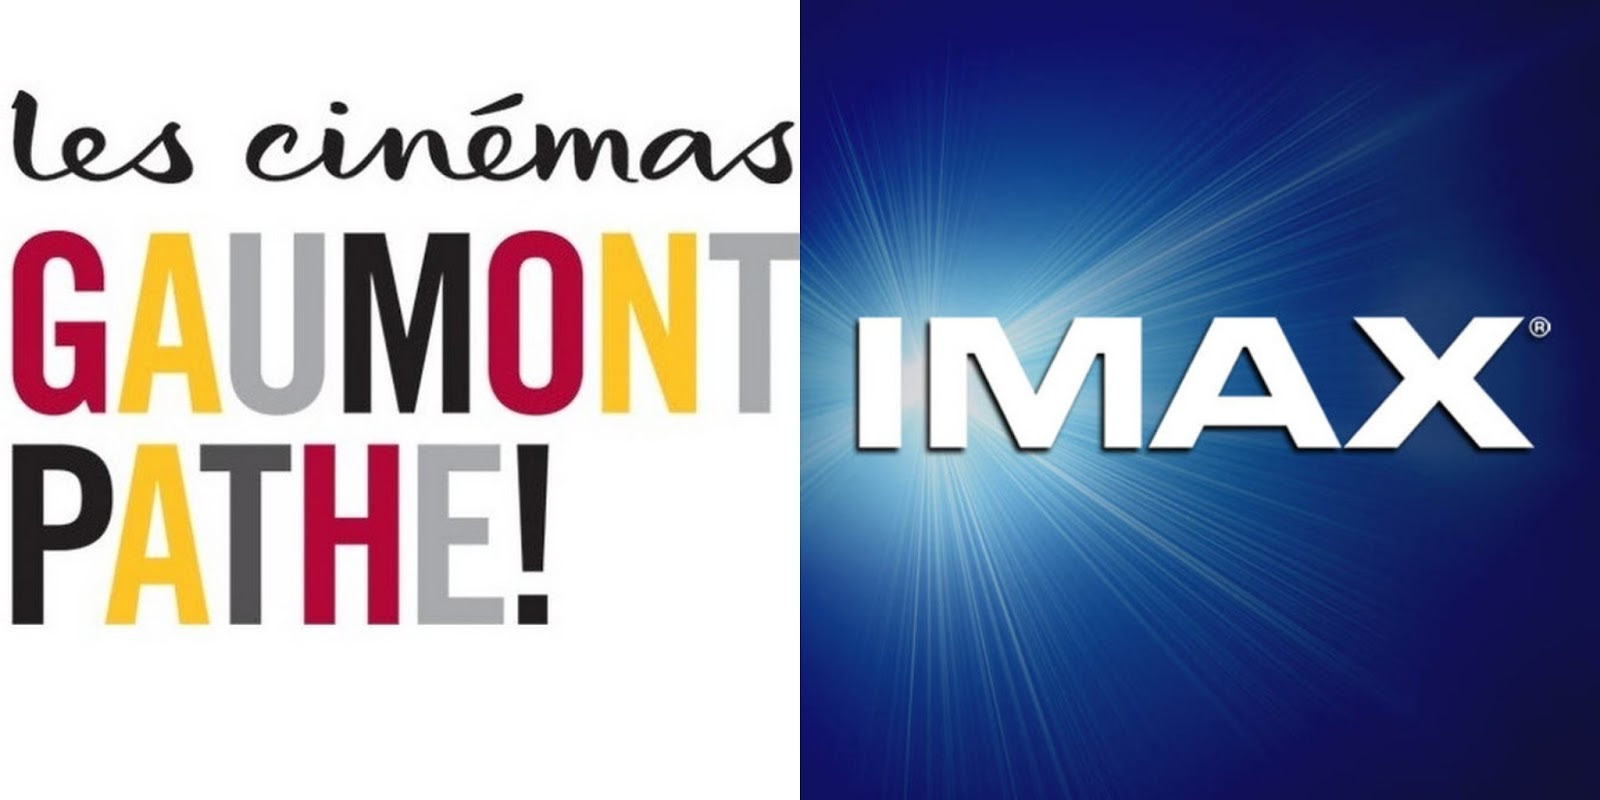 Les Cinémas Gaumont Pathé Expands IMAX Deal For Six New Theaters In France And Holland